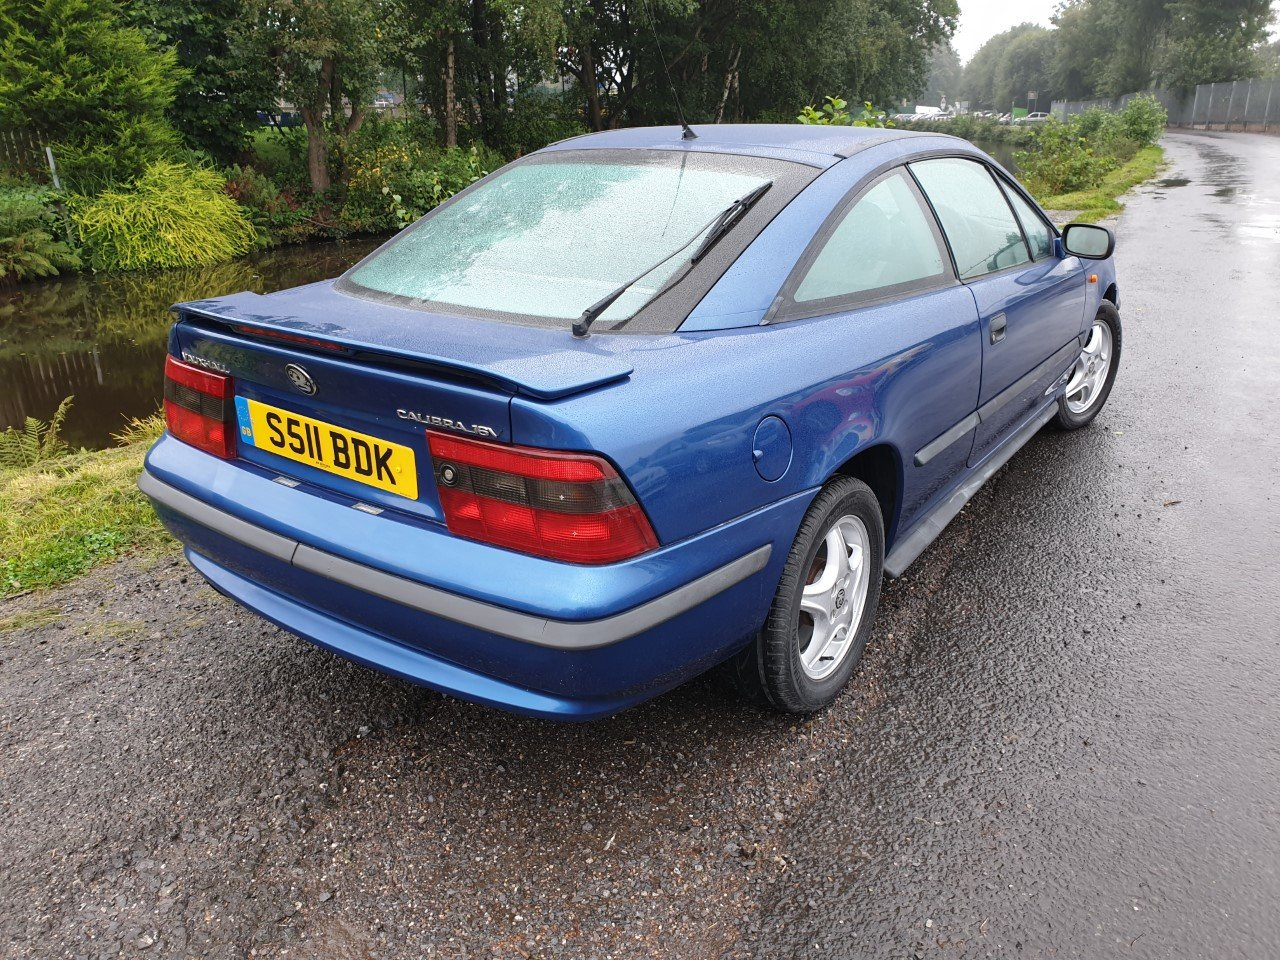 1998 Vauxhall Calibra SE8 in Metallic Blue. For Sale (picture 3 of 6)